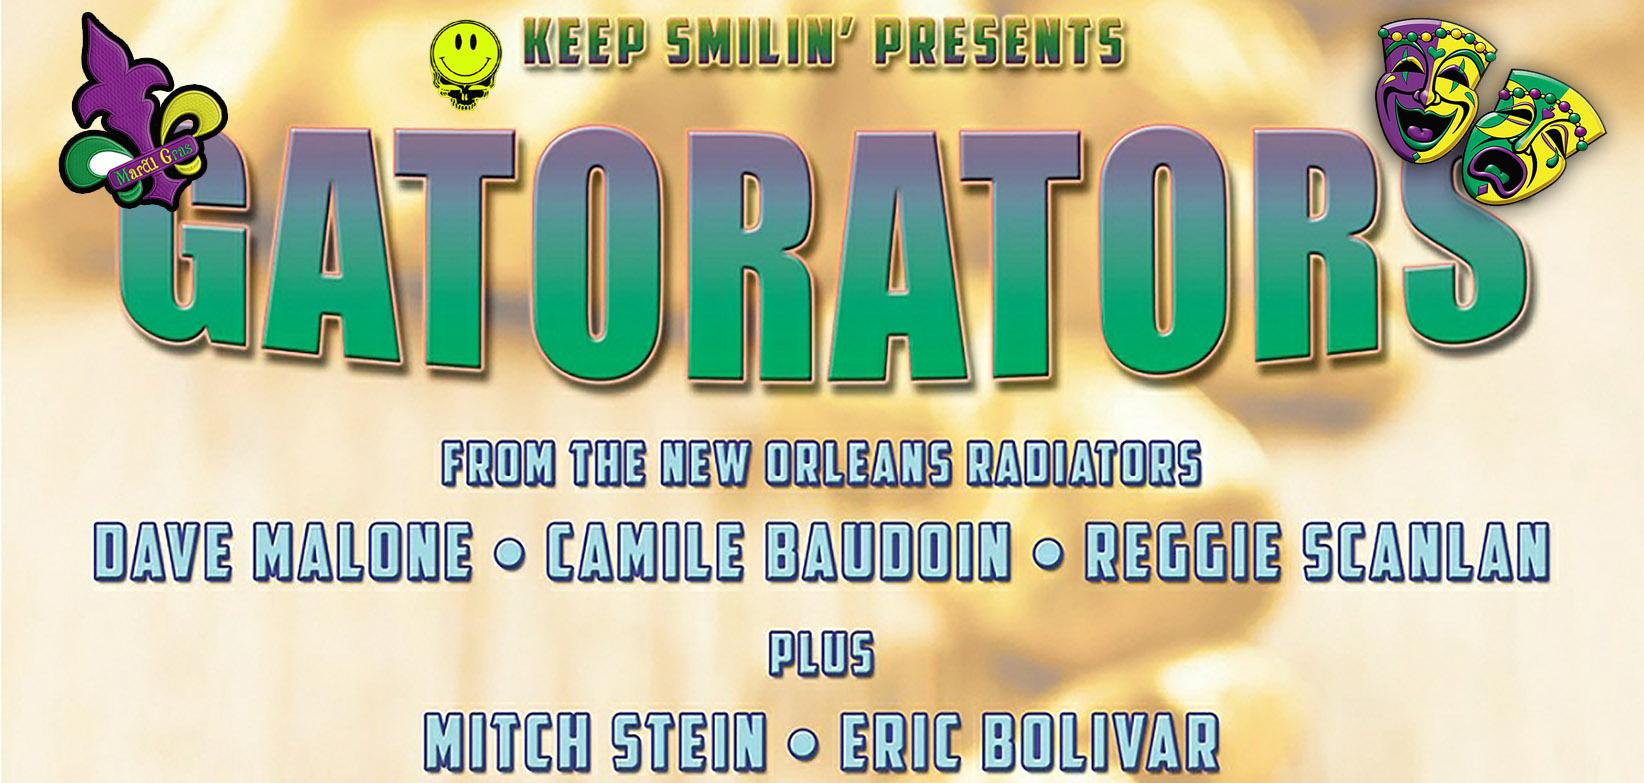 GATORATORS! Featuring Members of the RADIATORS - Mardi Gras Fun in Auburn!